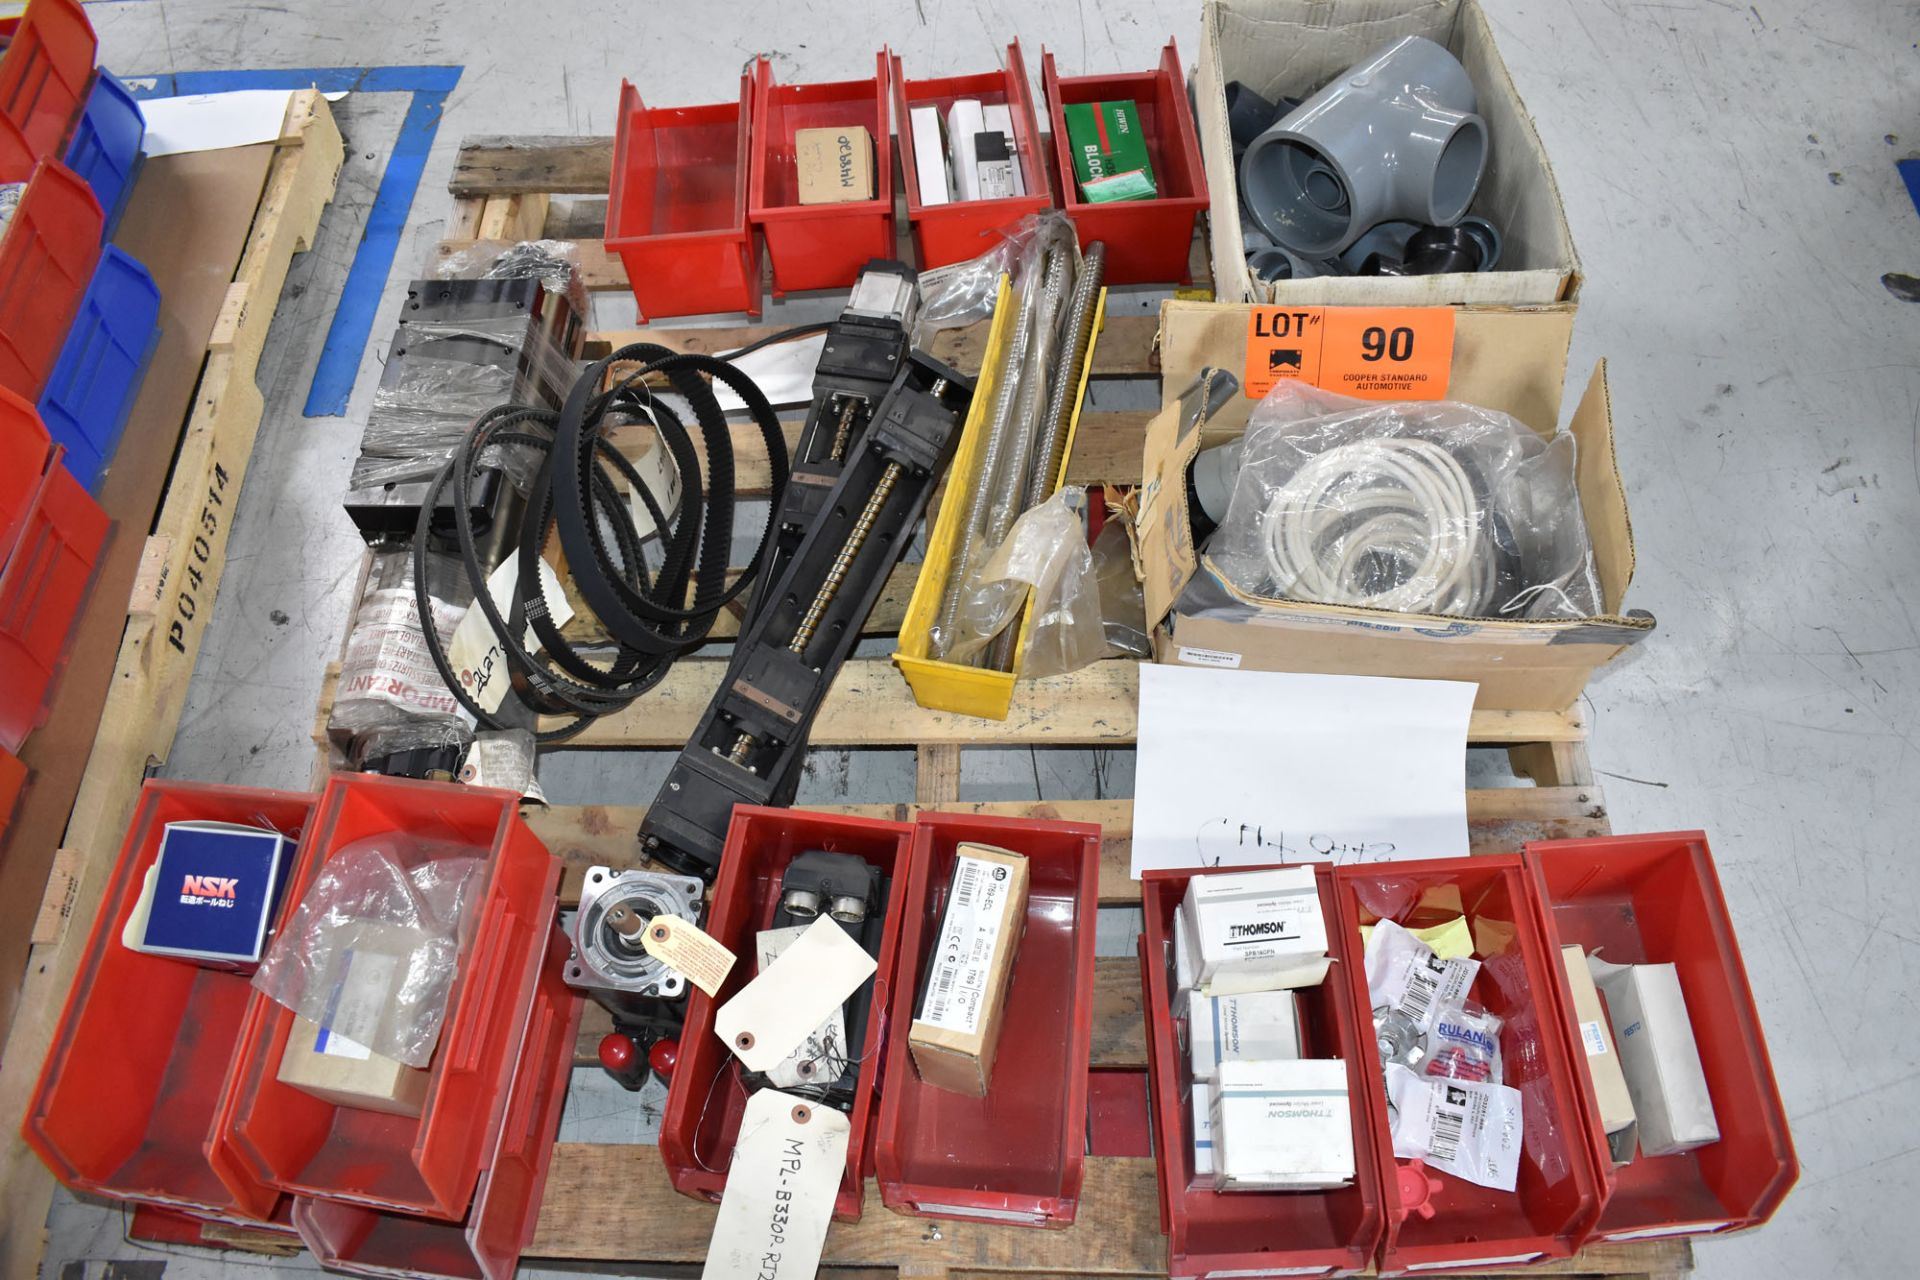 LOT/ PALLET WITH CONTENTS CONSISTING OF FITTINGS, HARDWARE, AND EXTRUDER LINE COMPONENTS [RIGGING